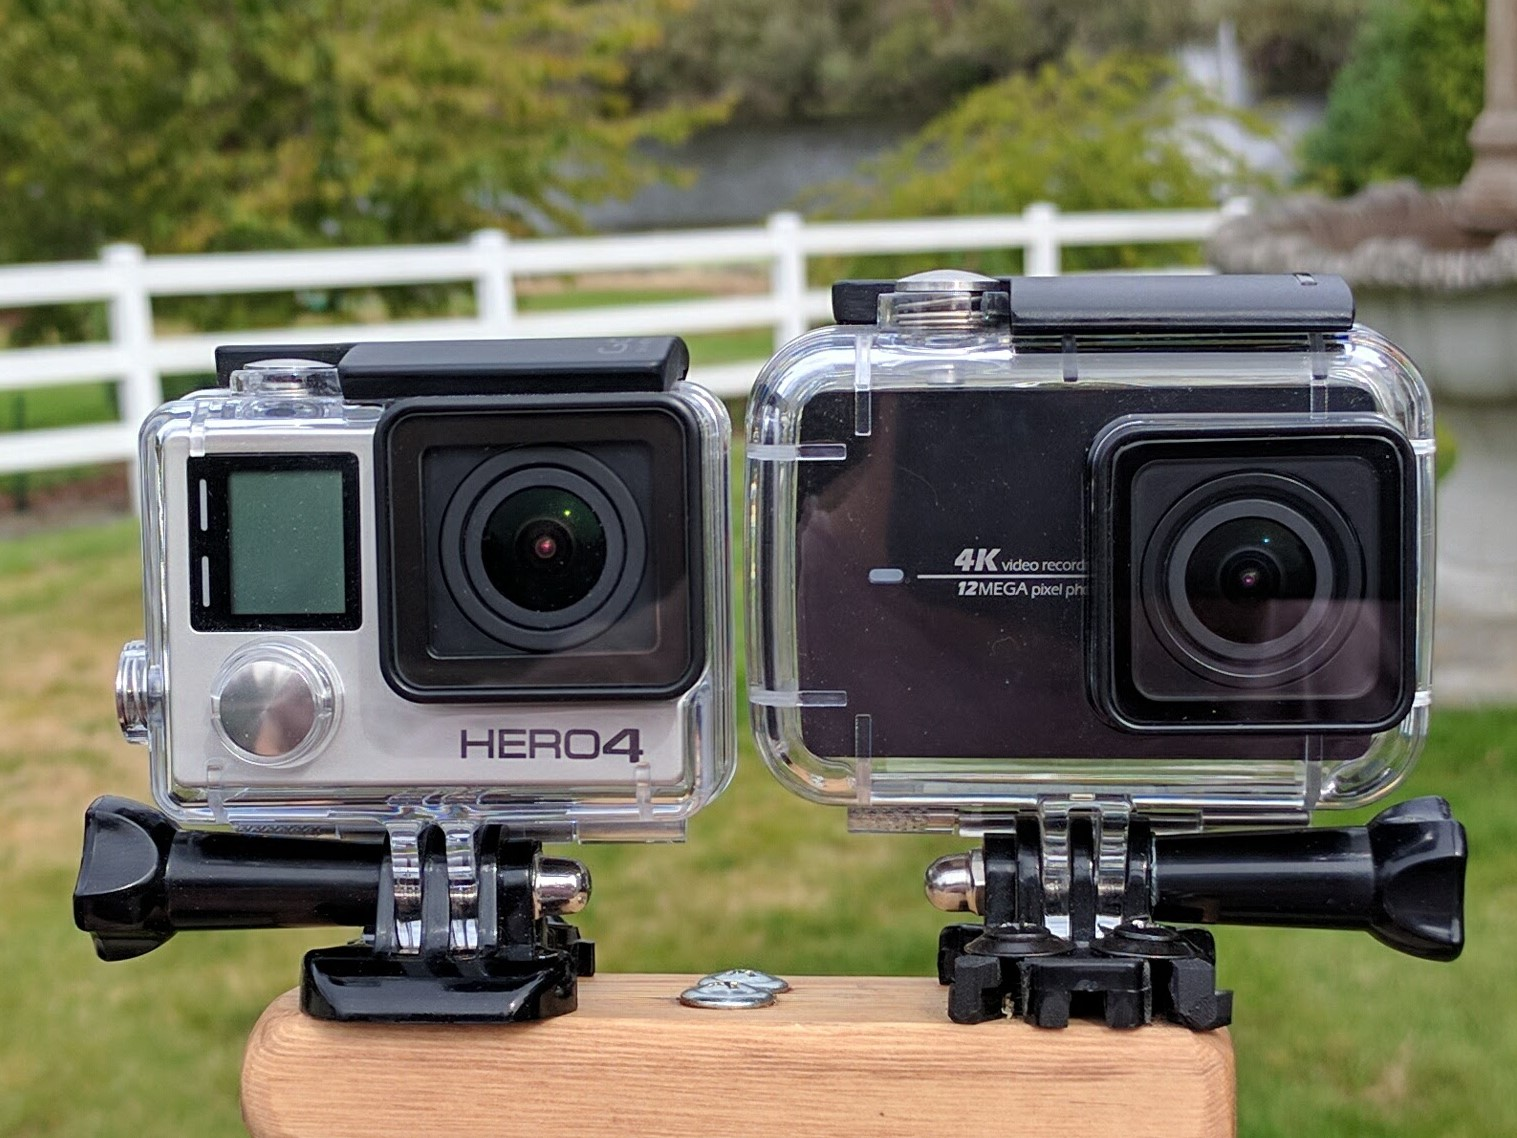 Yi 4k Action Cam Review Gopro Should Be Worried Xiaomi 2 Gen First The Looks Quite A Bit Like Waterproof Case Is Also Nearly Identical Gopros Sounds It Makes